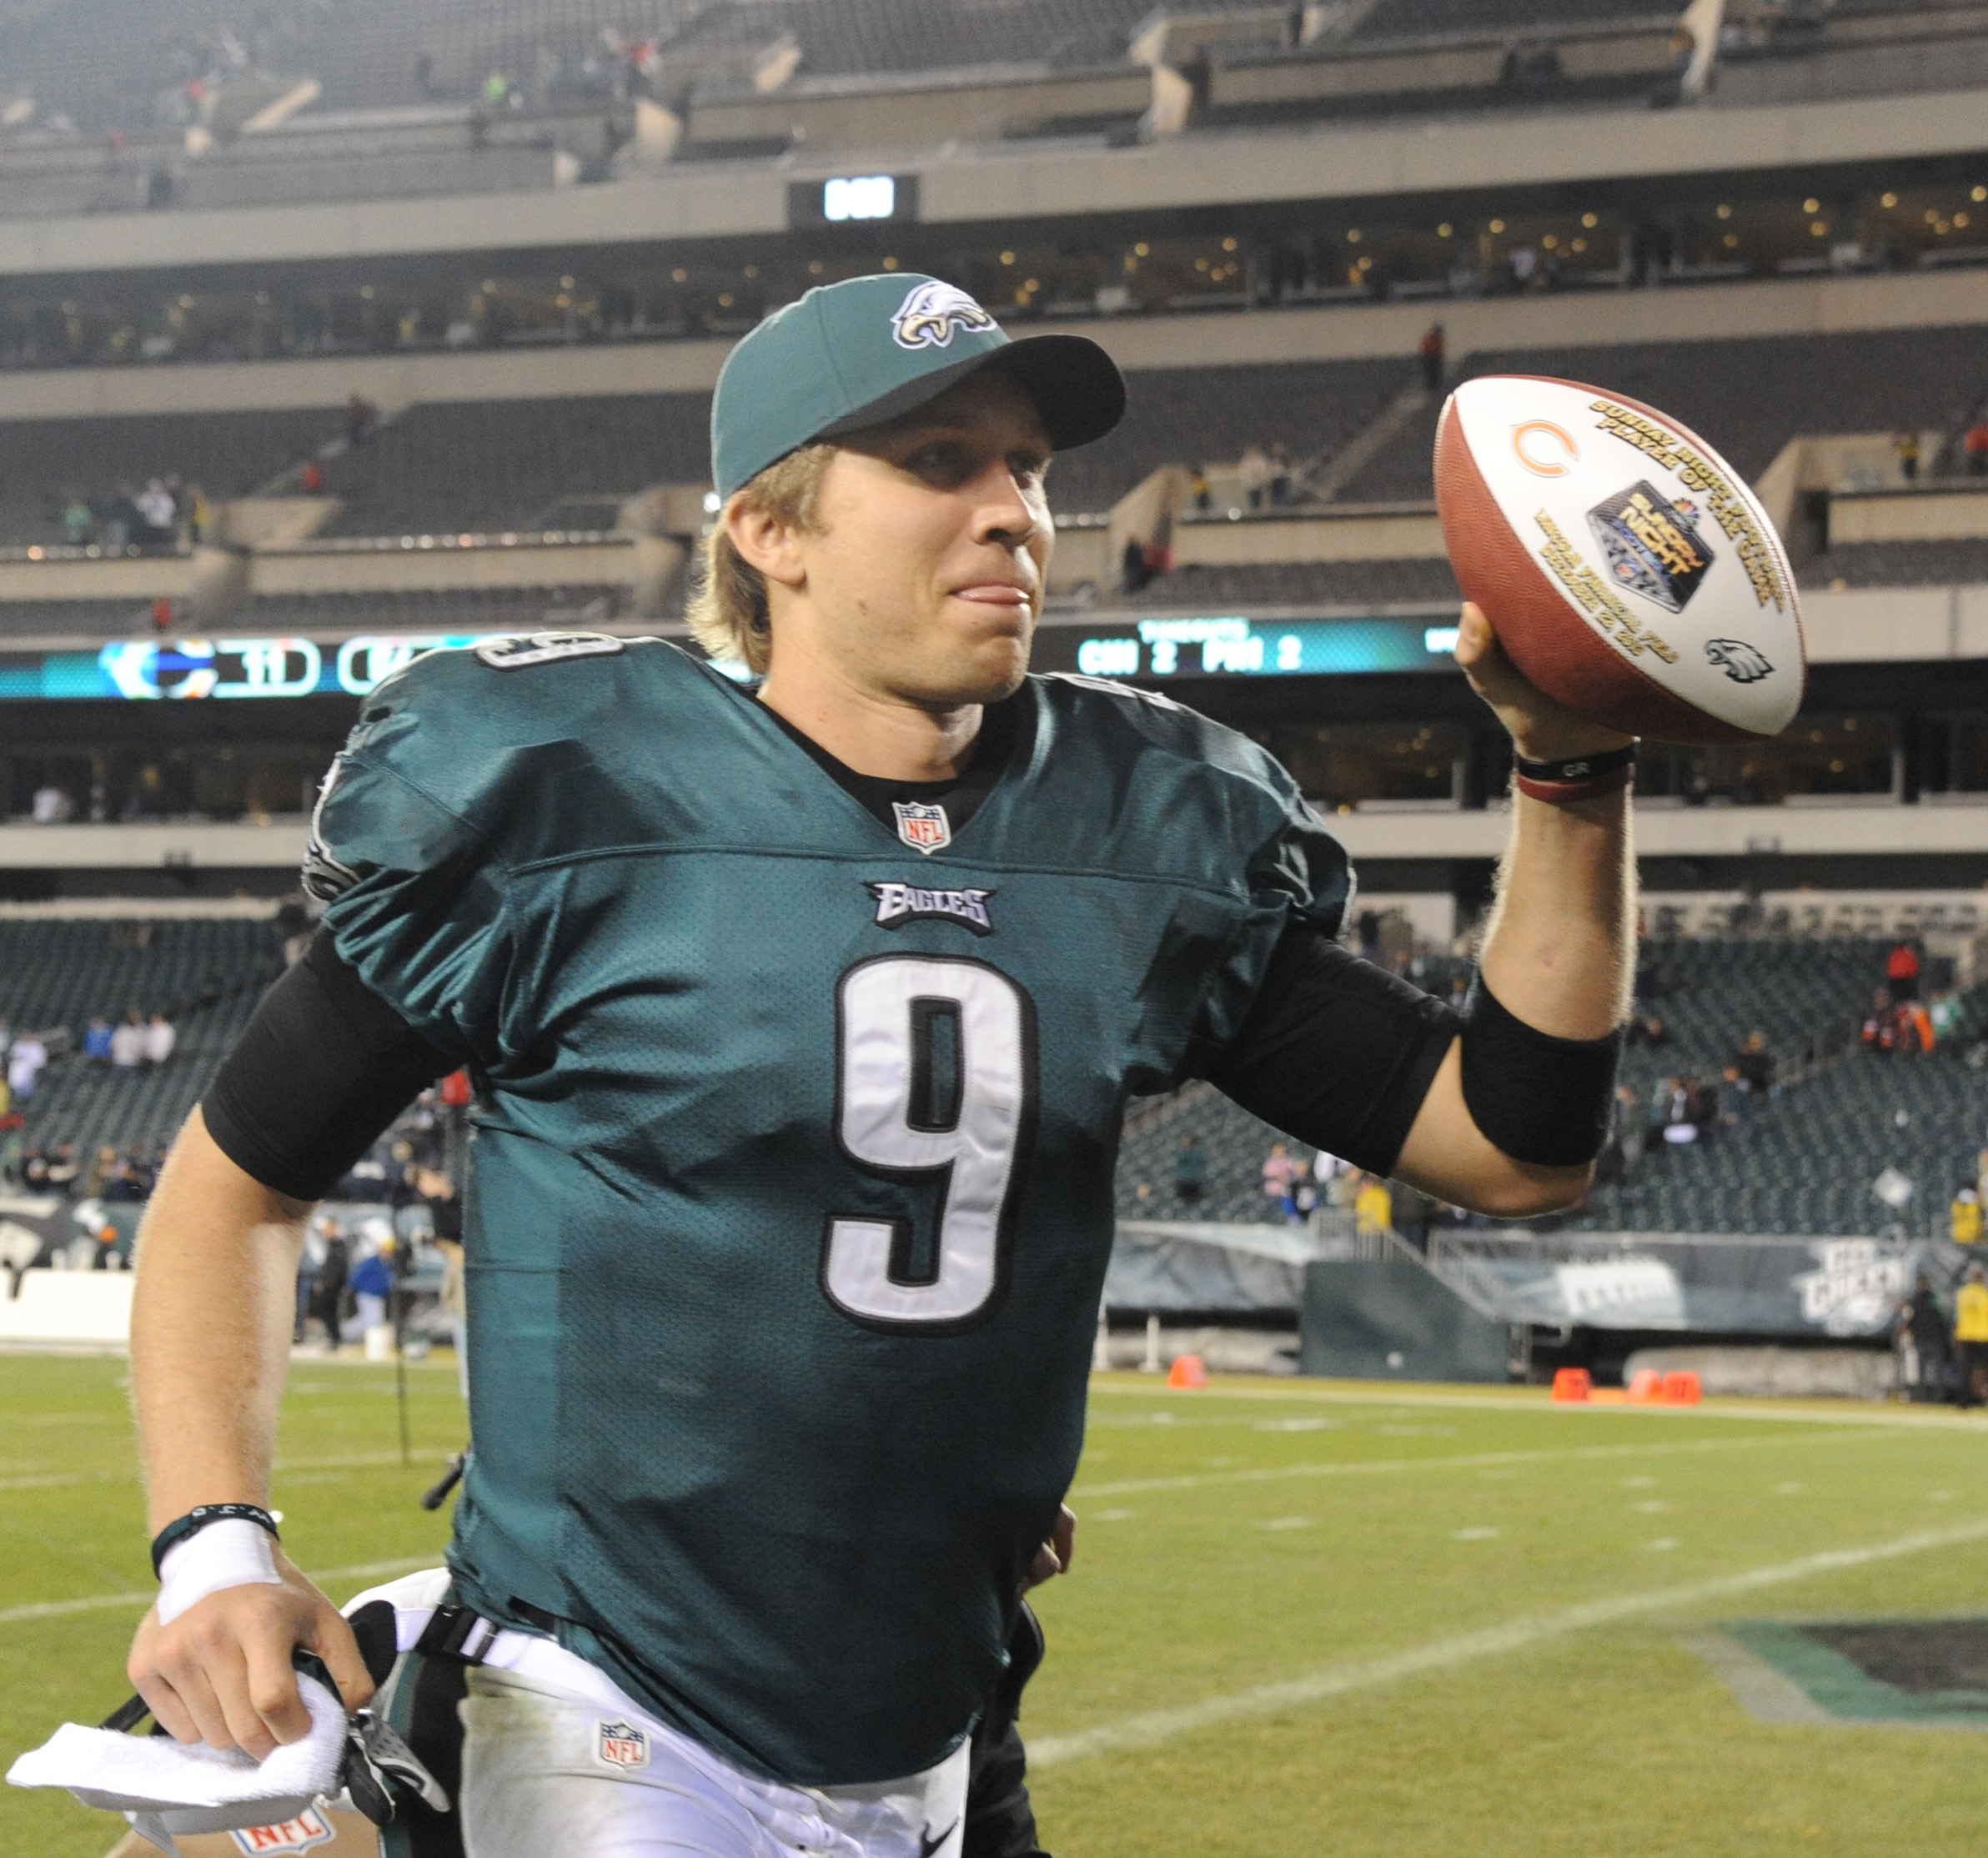 Eagles quarterback Nick Foles runs off the field holding a ball aloft after the Eagle beat the Chicago Bears 54-11 at Lincoln Financial Field Dec. 22, 2013. (CLEM MURRAY / Staff Photographer )